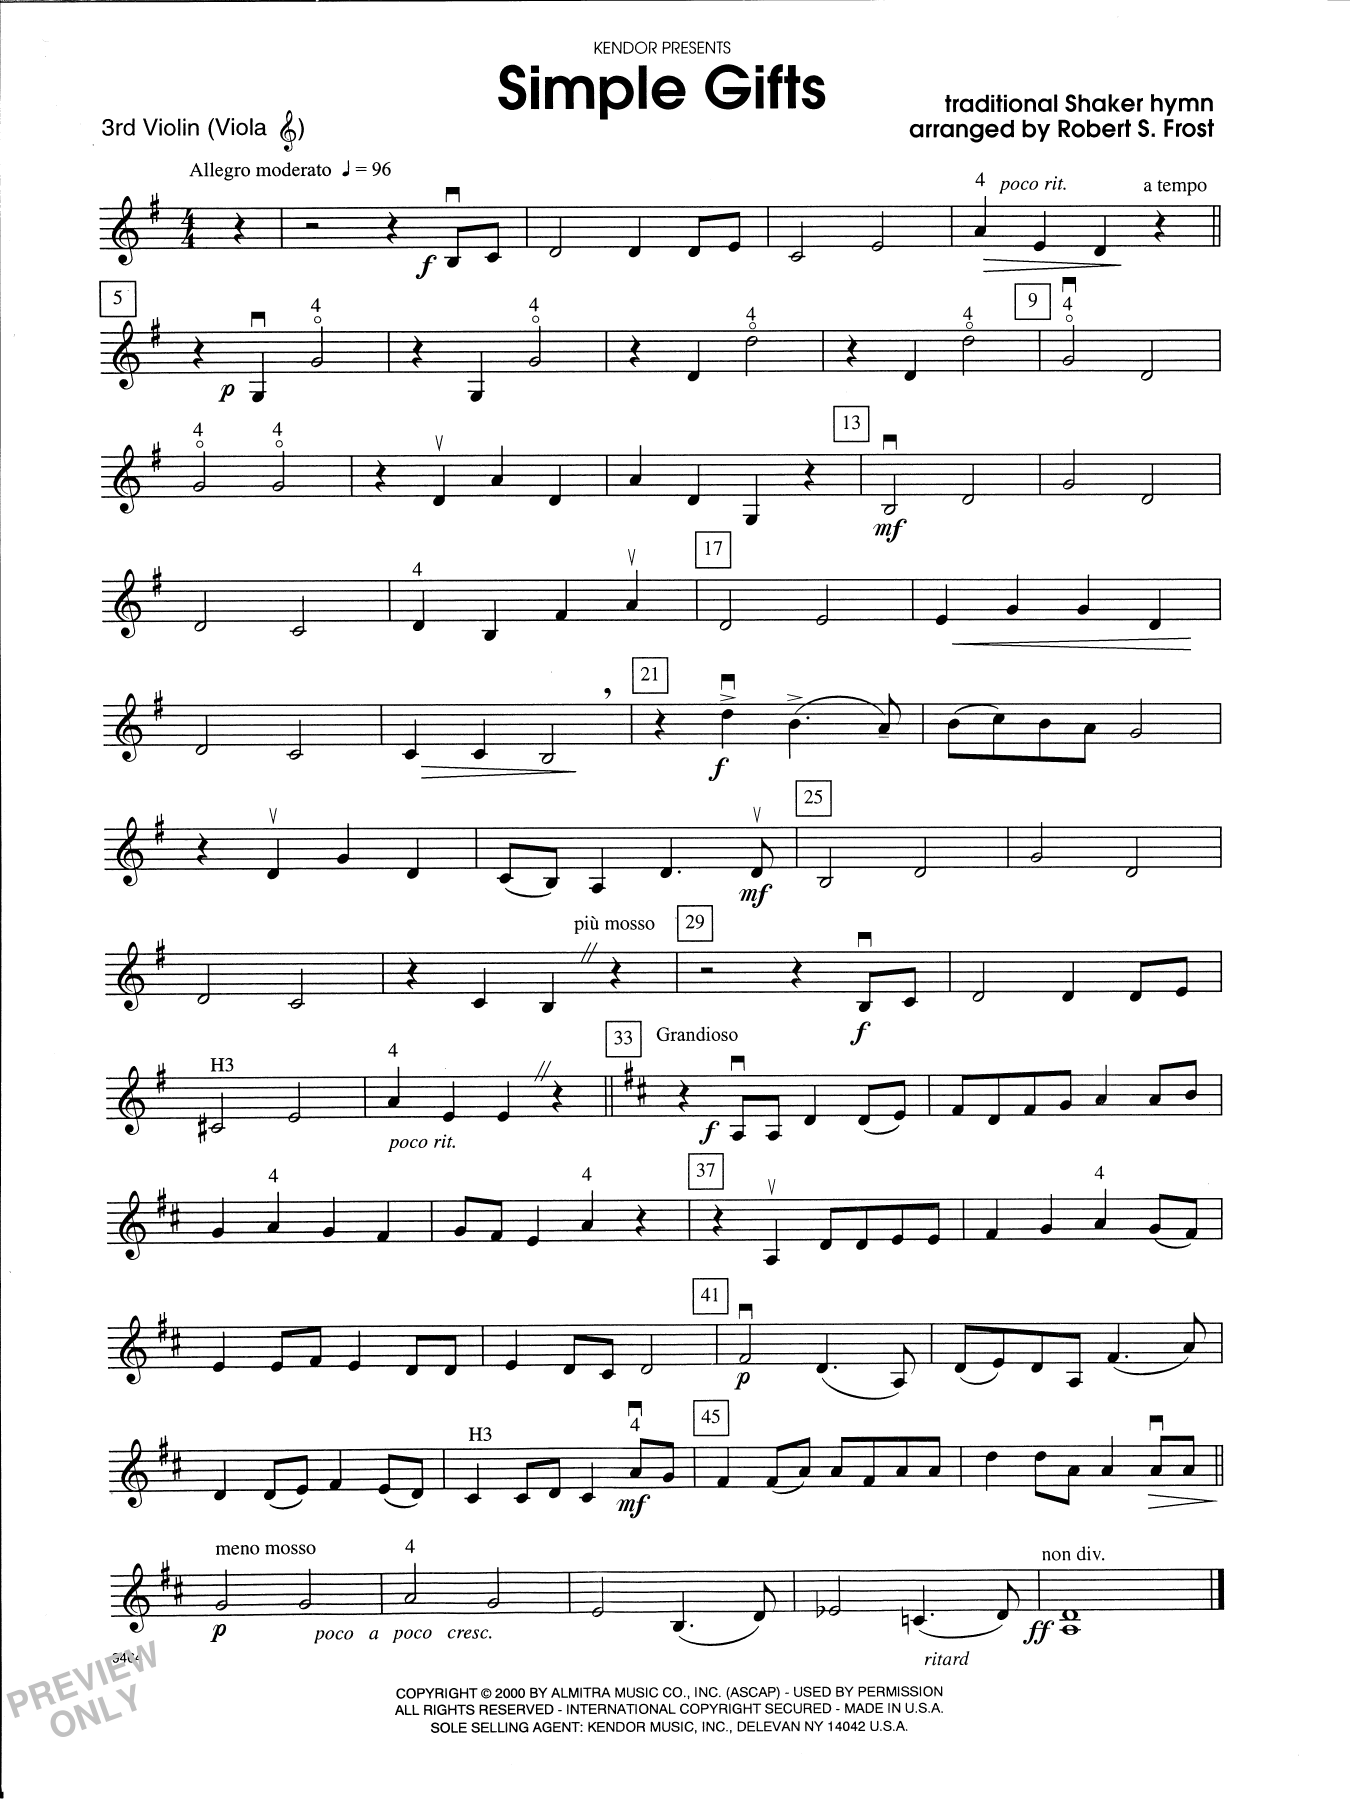 Robert S. Frost Simple Gifts - Violin 3 (Viola T.C.) sheet music notes and chords. Download Printable PDF.